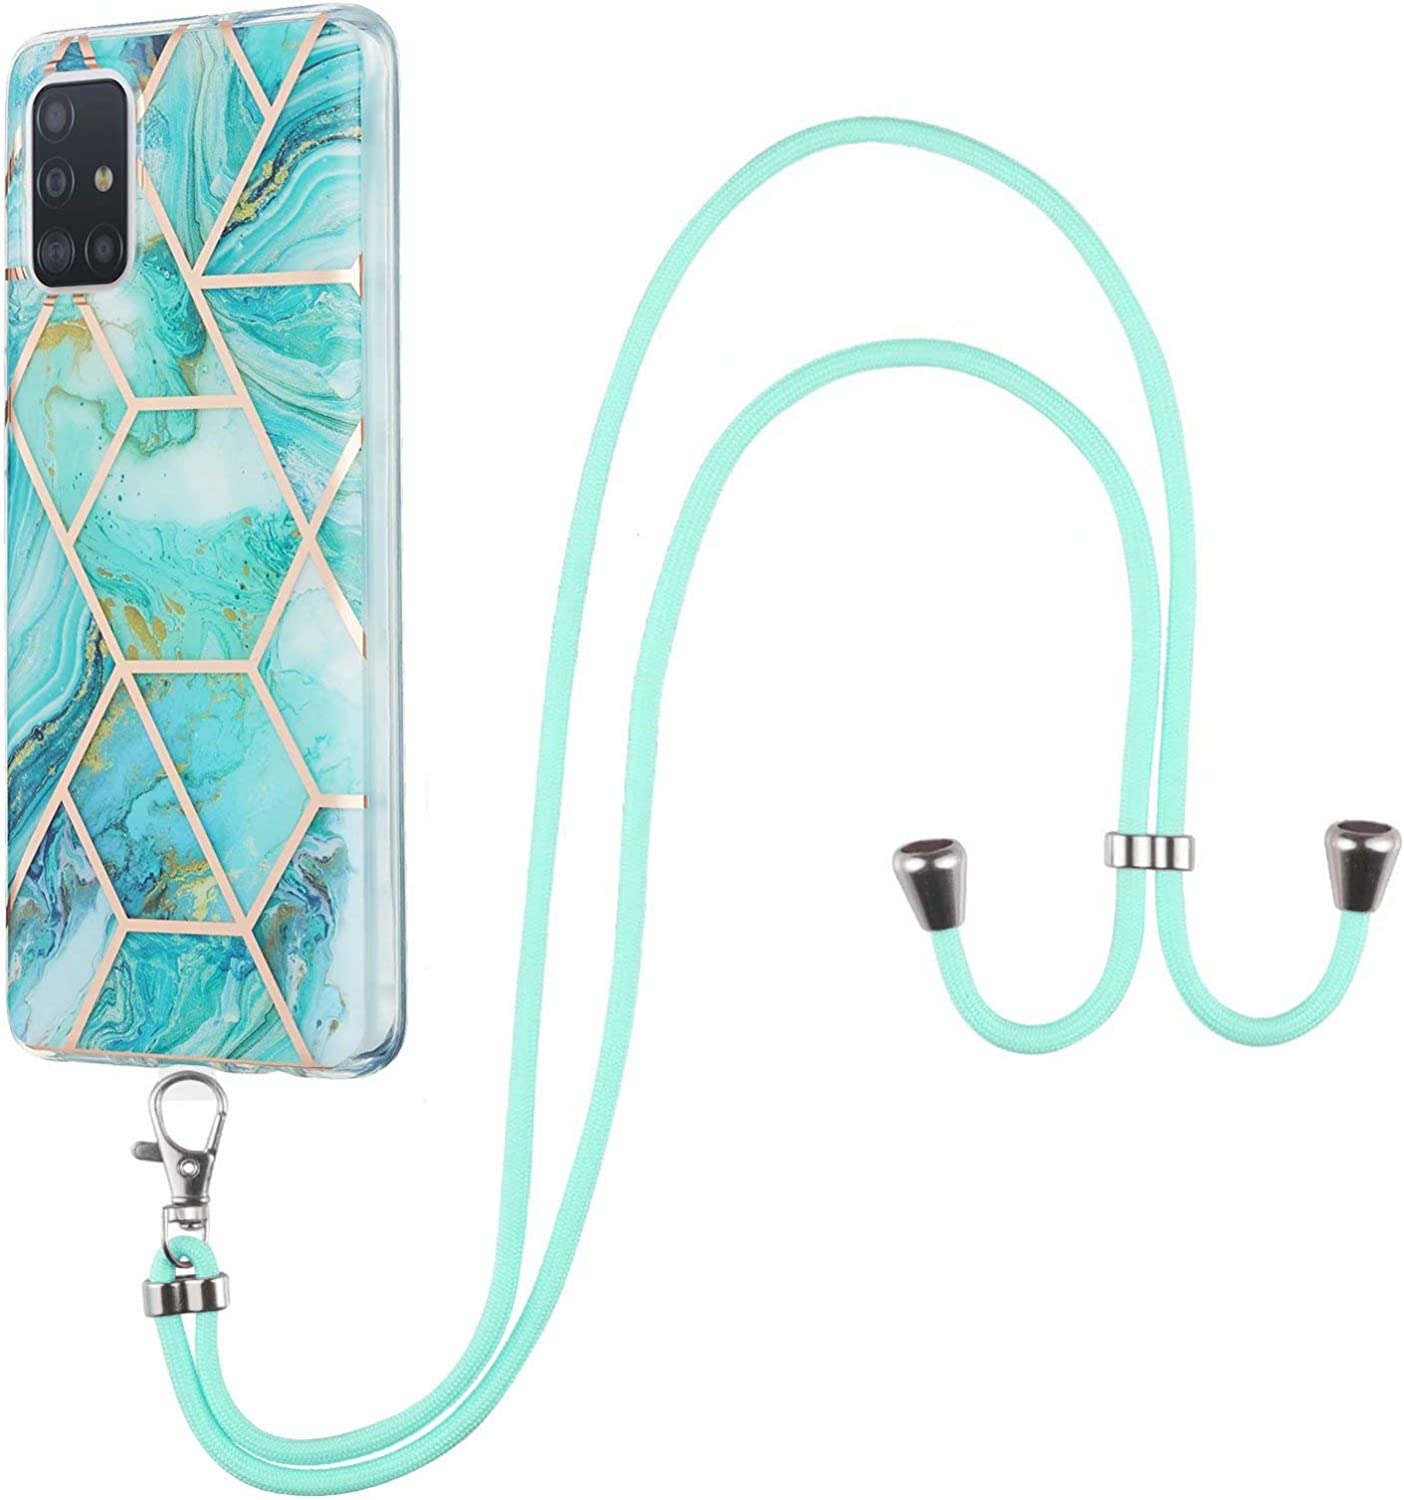 MTQLX Crossbody Case Compatible with Motorola Moto Moto G Power (2021) Marble Splicing TPU Cell Phone Mobile Cover Holder with Neck Cord Lanyard Strap Protective Cover for Women(Blue)